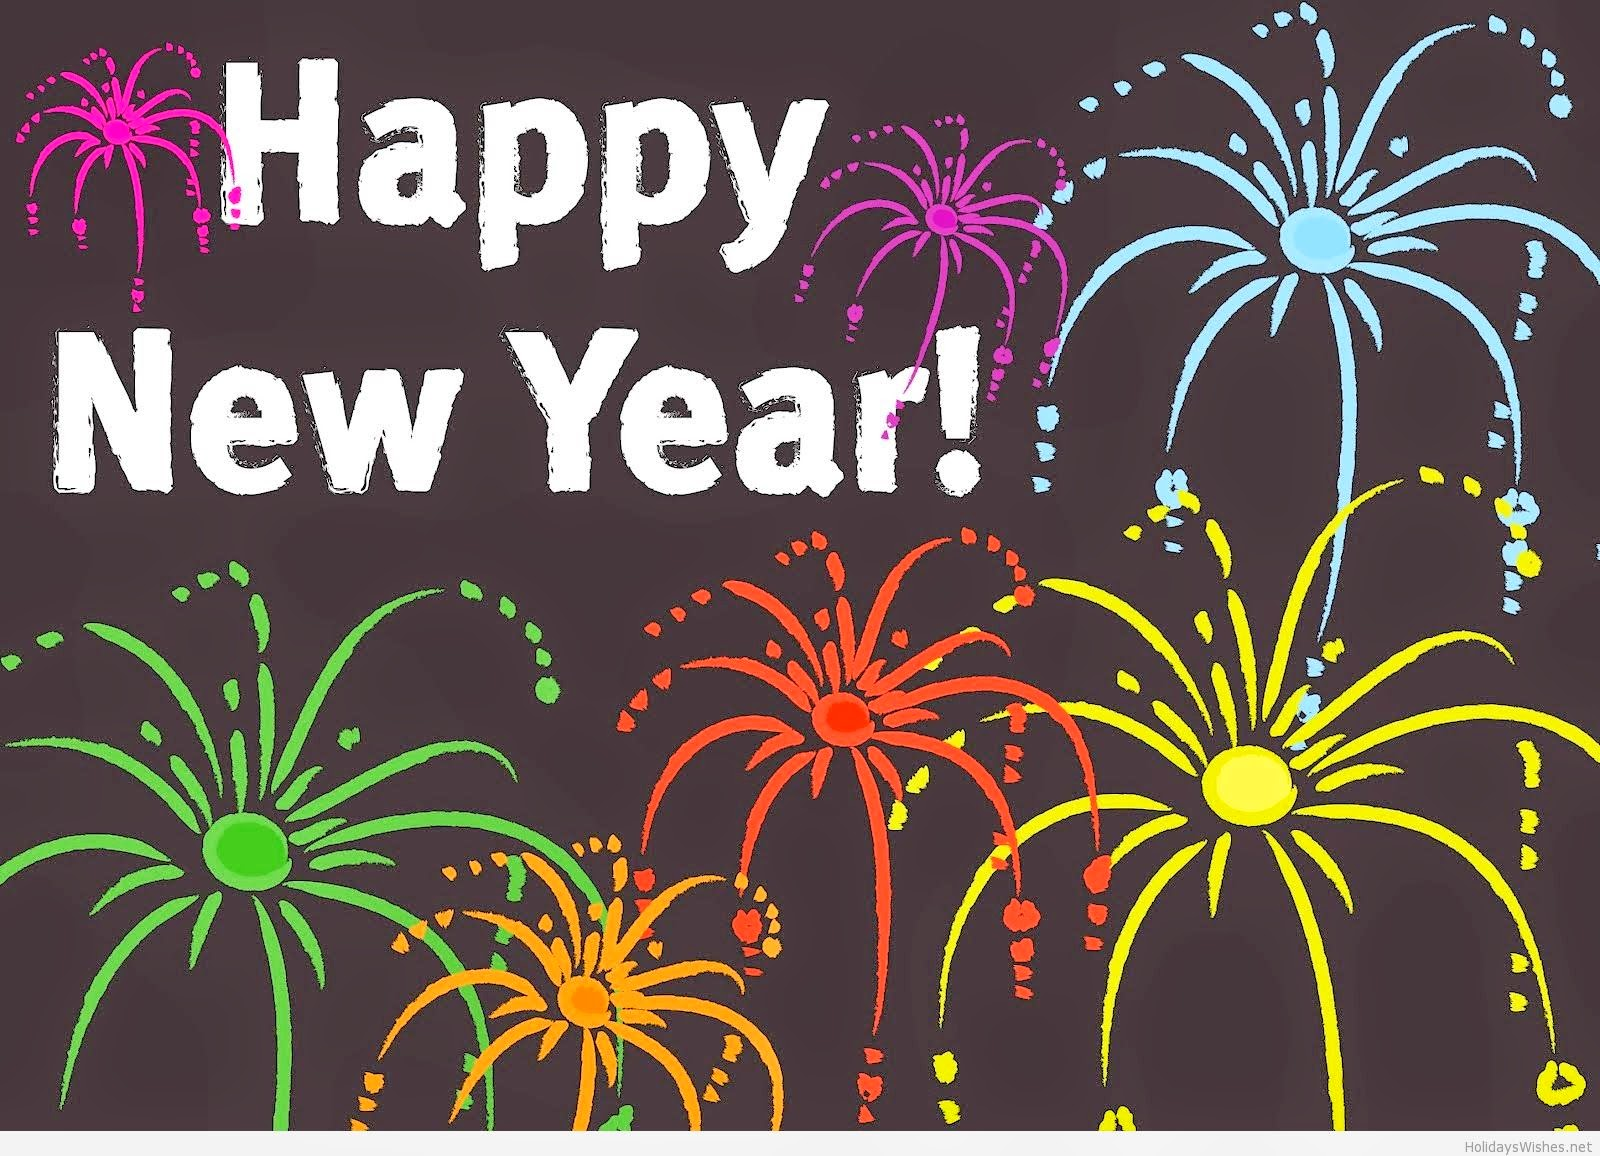 Happy New Year 2015 - Wallpaper Cards